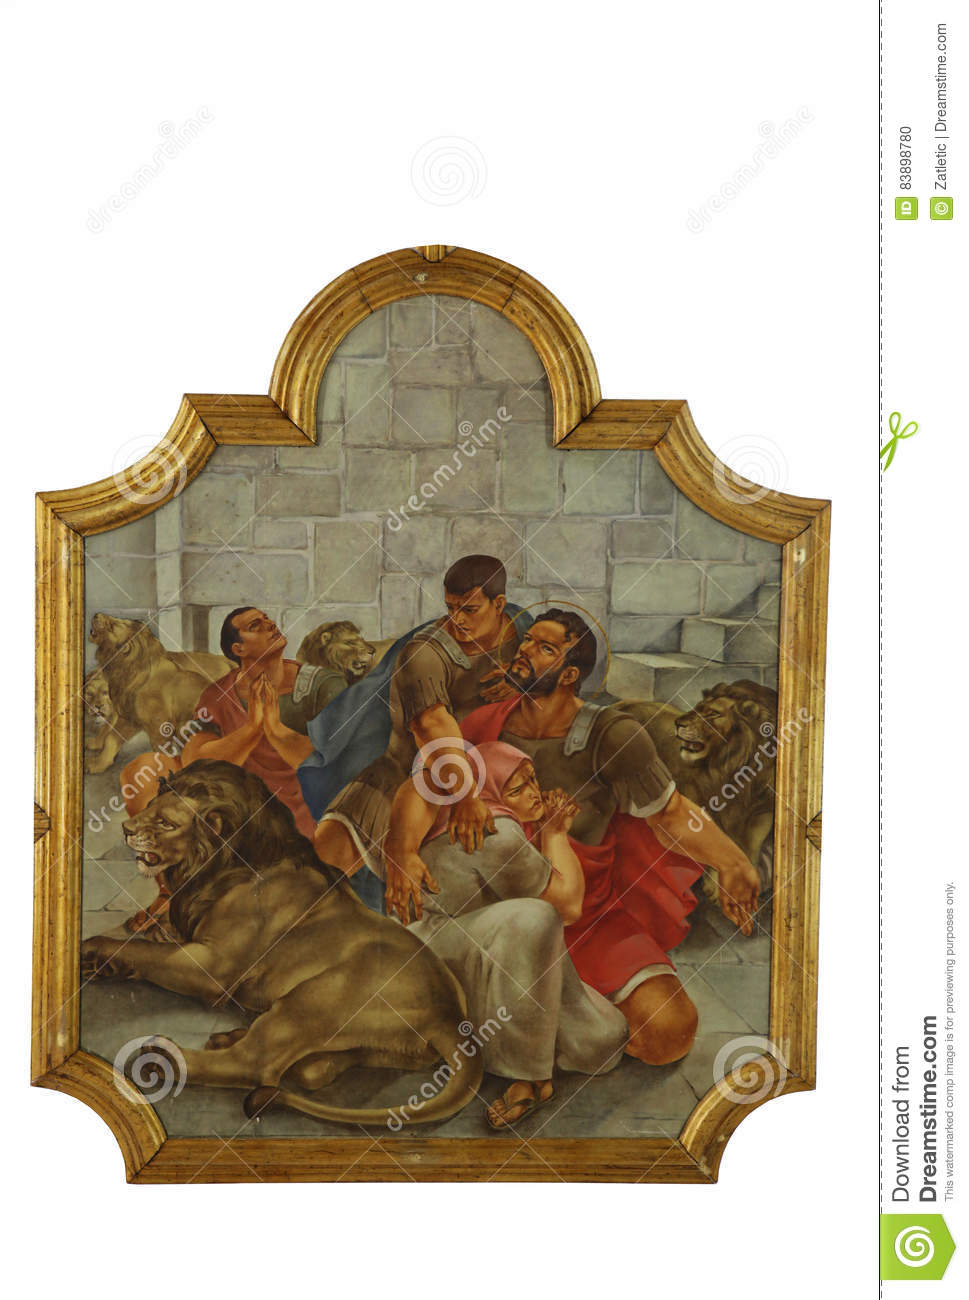 the life and times of saint The life of st francis of assisi it is entirely possible that the wolf of gubbio signifies a name attached to an outlaw of the time that raided and robbed the small village when confronted by the townspeople st francis of assisi.